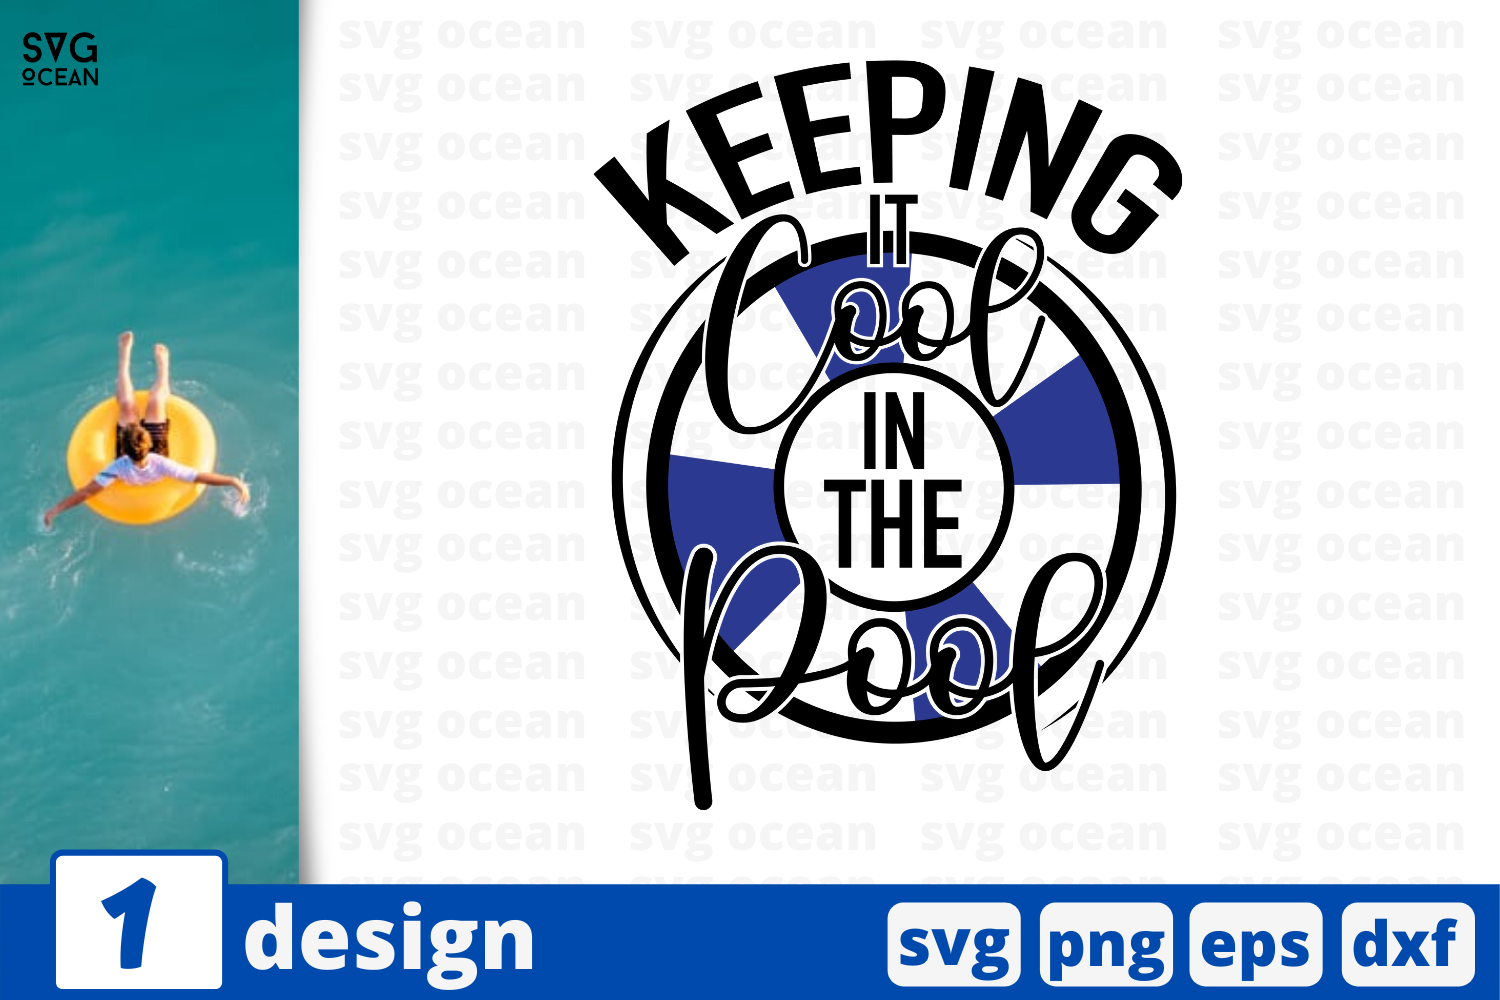 Download Free Keeping It Cool Quote Graphic By Svgocean Creative Fabrica for Cricut Explore, Silhouette and other cutting machines.